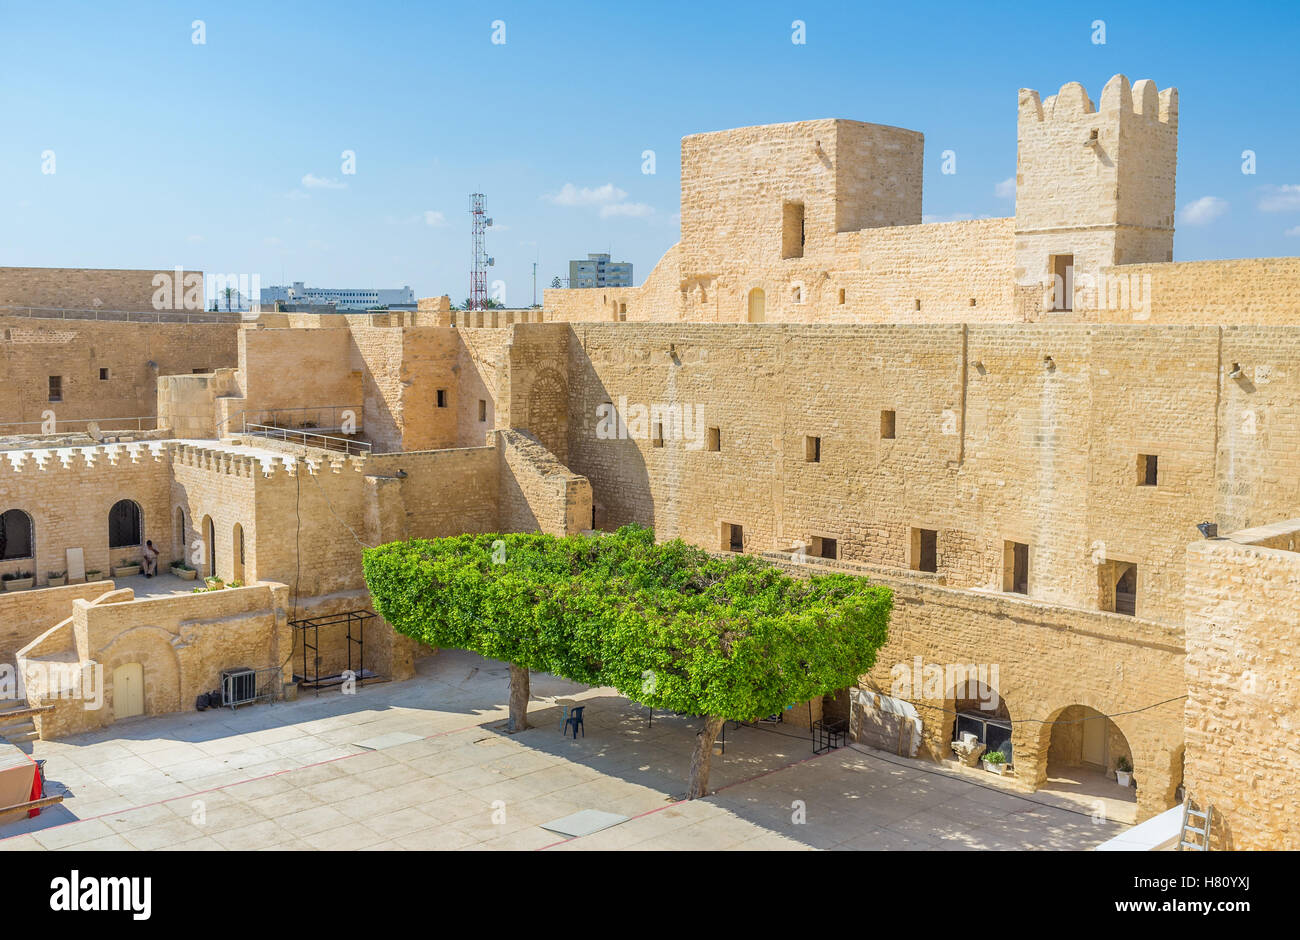 Nowadays the old stronghold serves as the museum, Monastir, Tunisia. - Stock Image